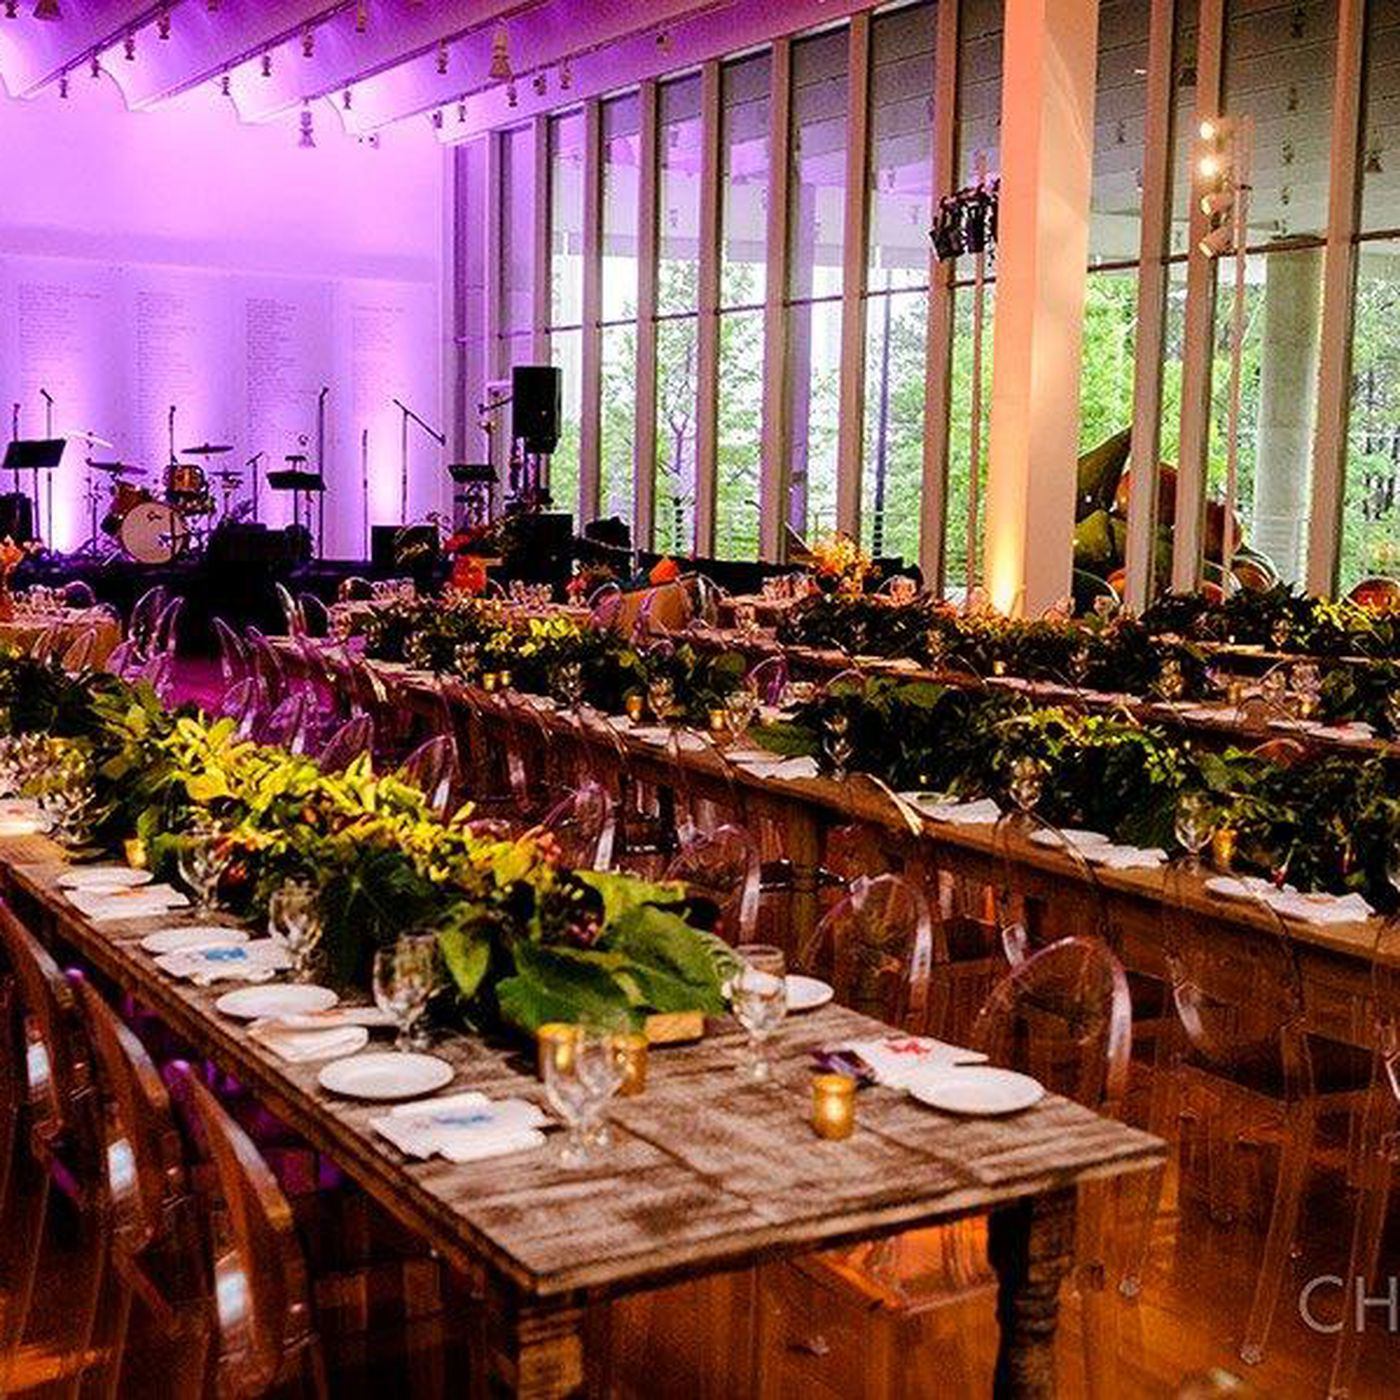 14 Most Beautiful Places For Weddings In Atlanta Mapped Curbed